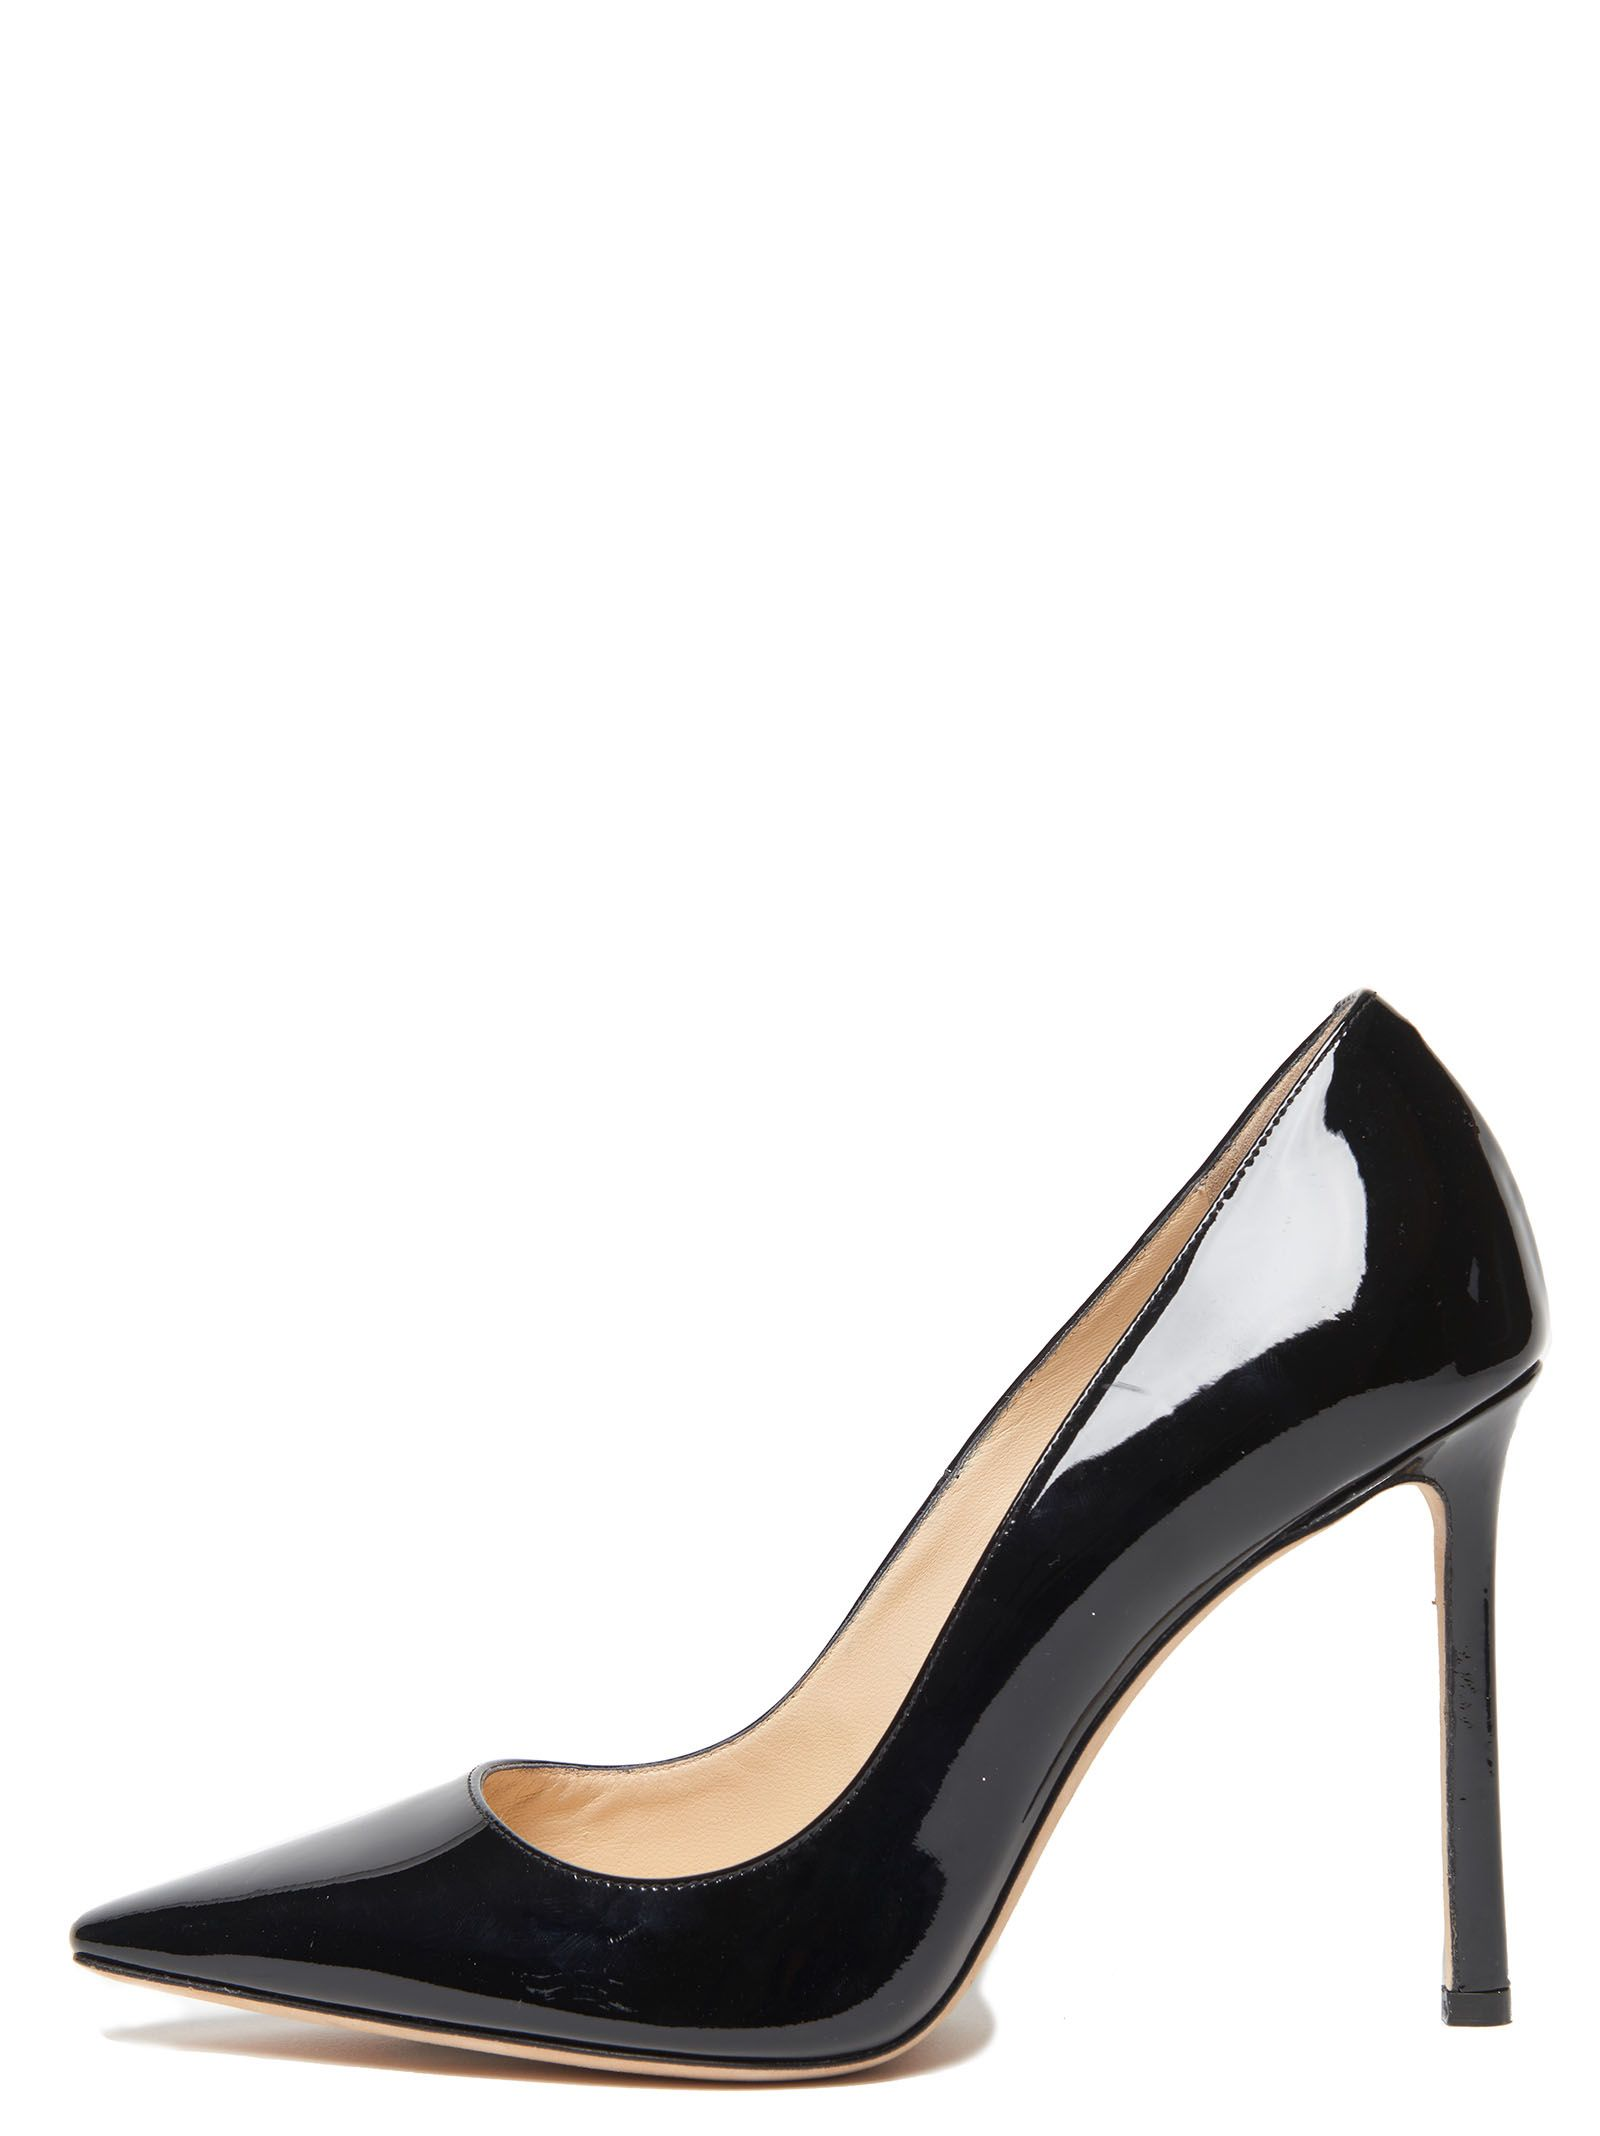 55f829cf96c Jimmy Choo Jimmy Choo Pumps - Black - 10779916